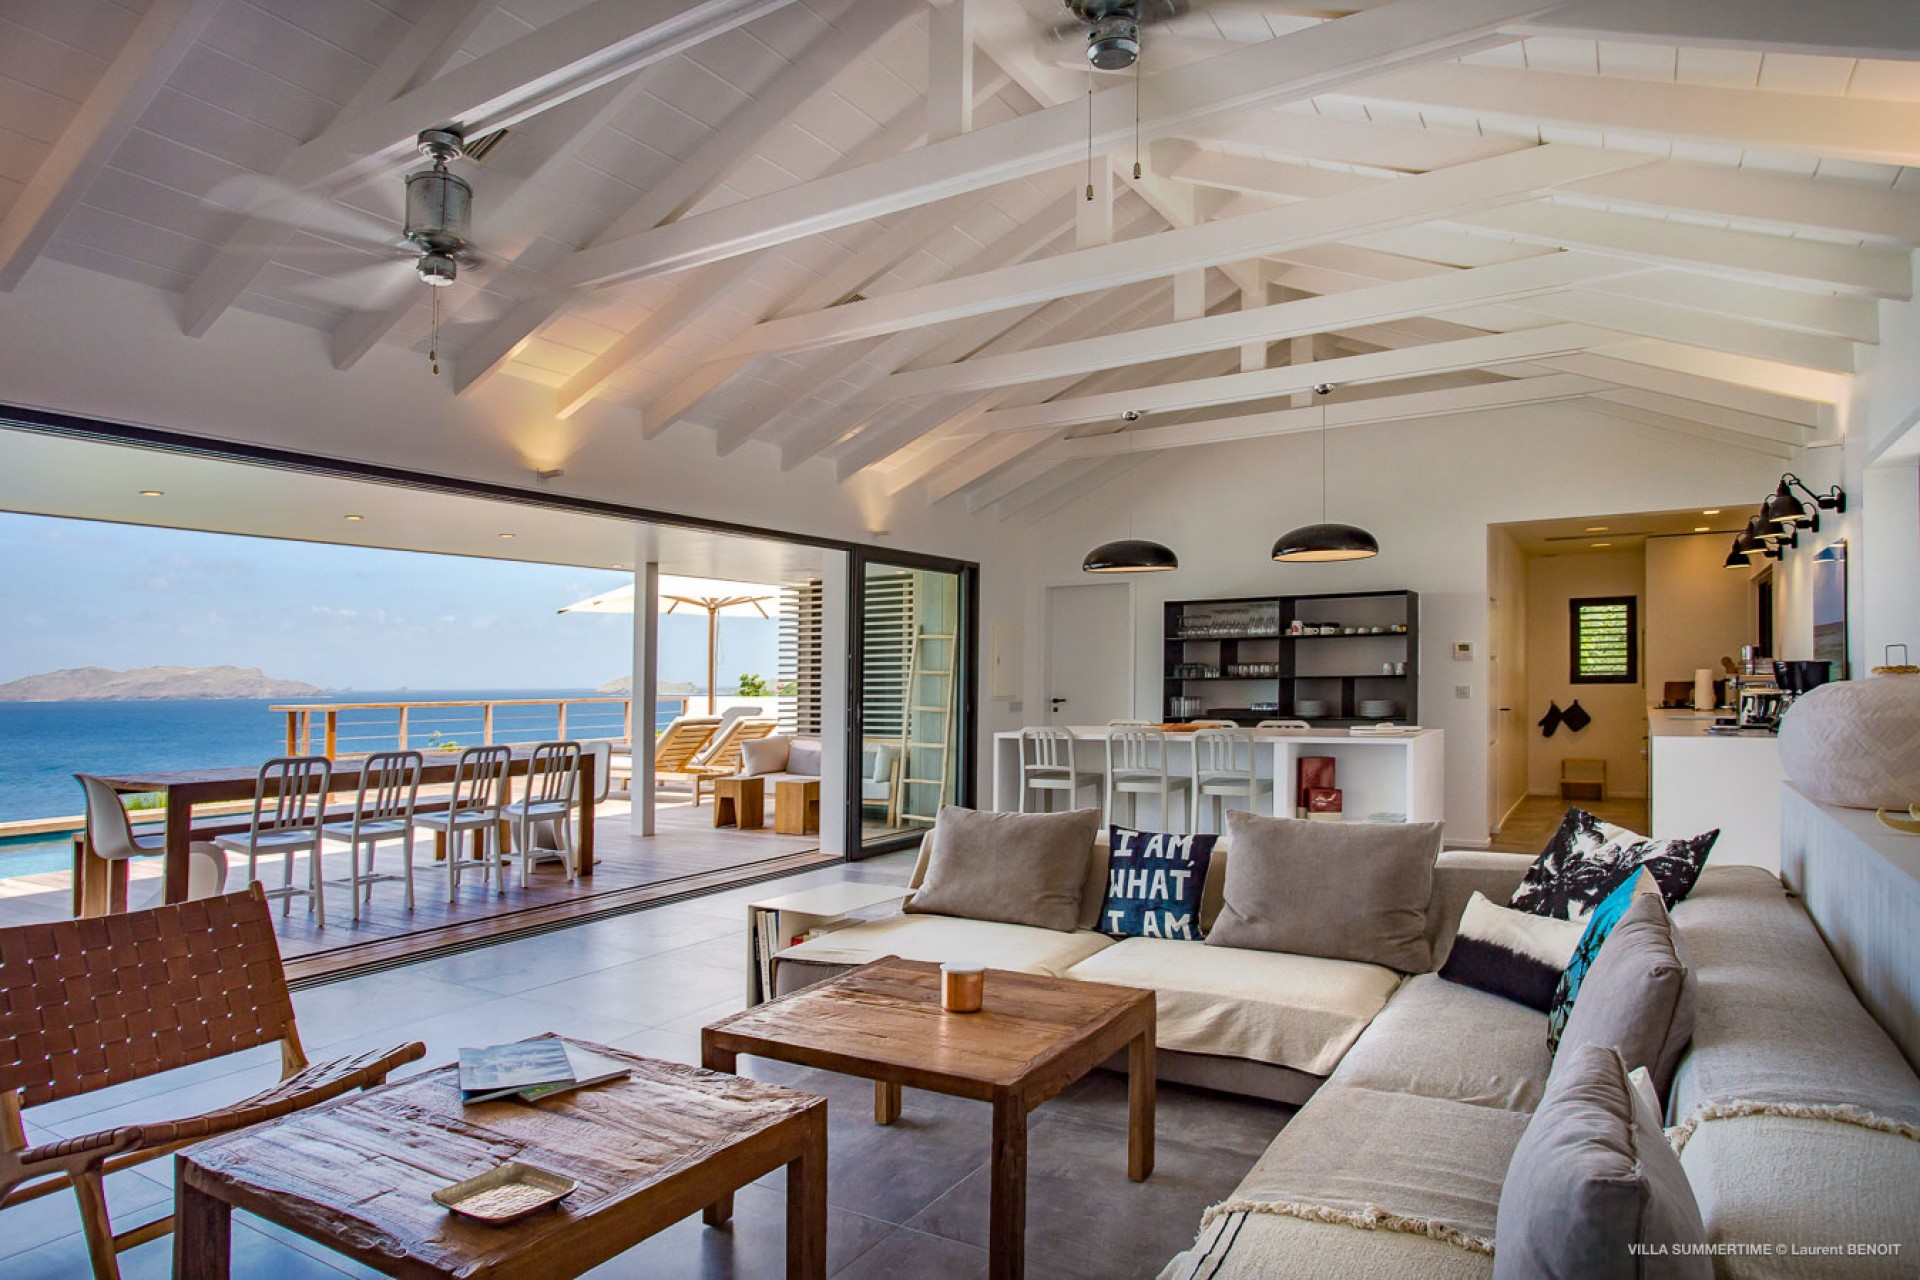 Summertime villa summertime st barts st barths for Villa lotto interior design